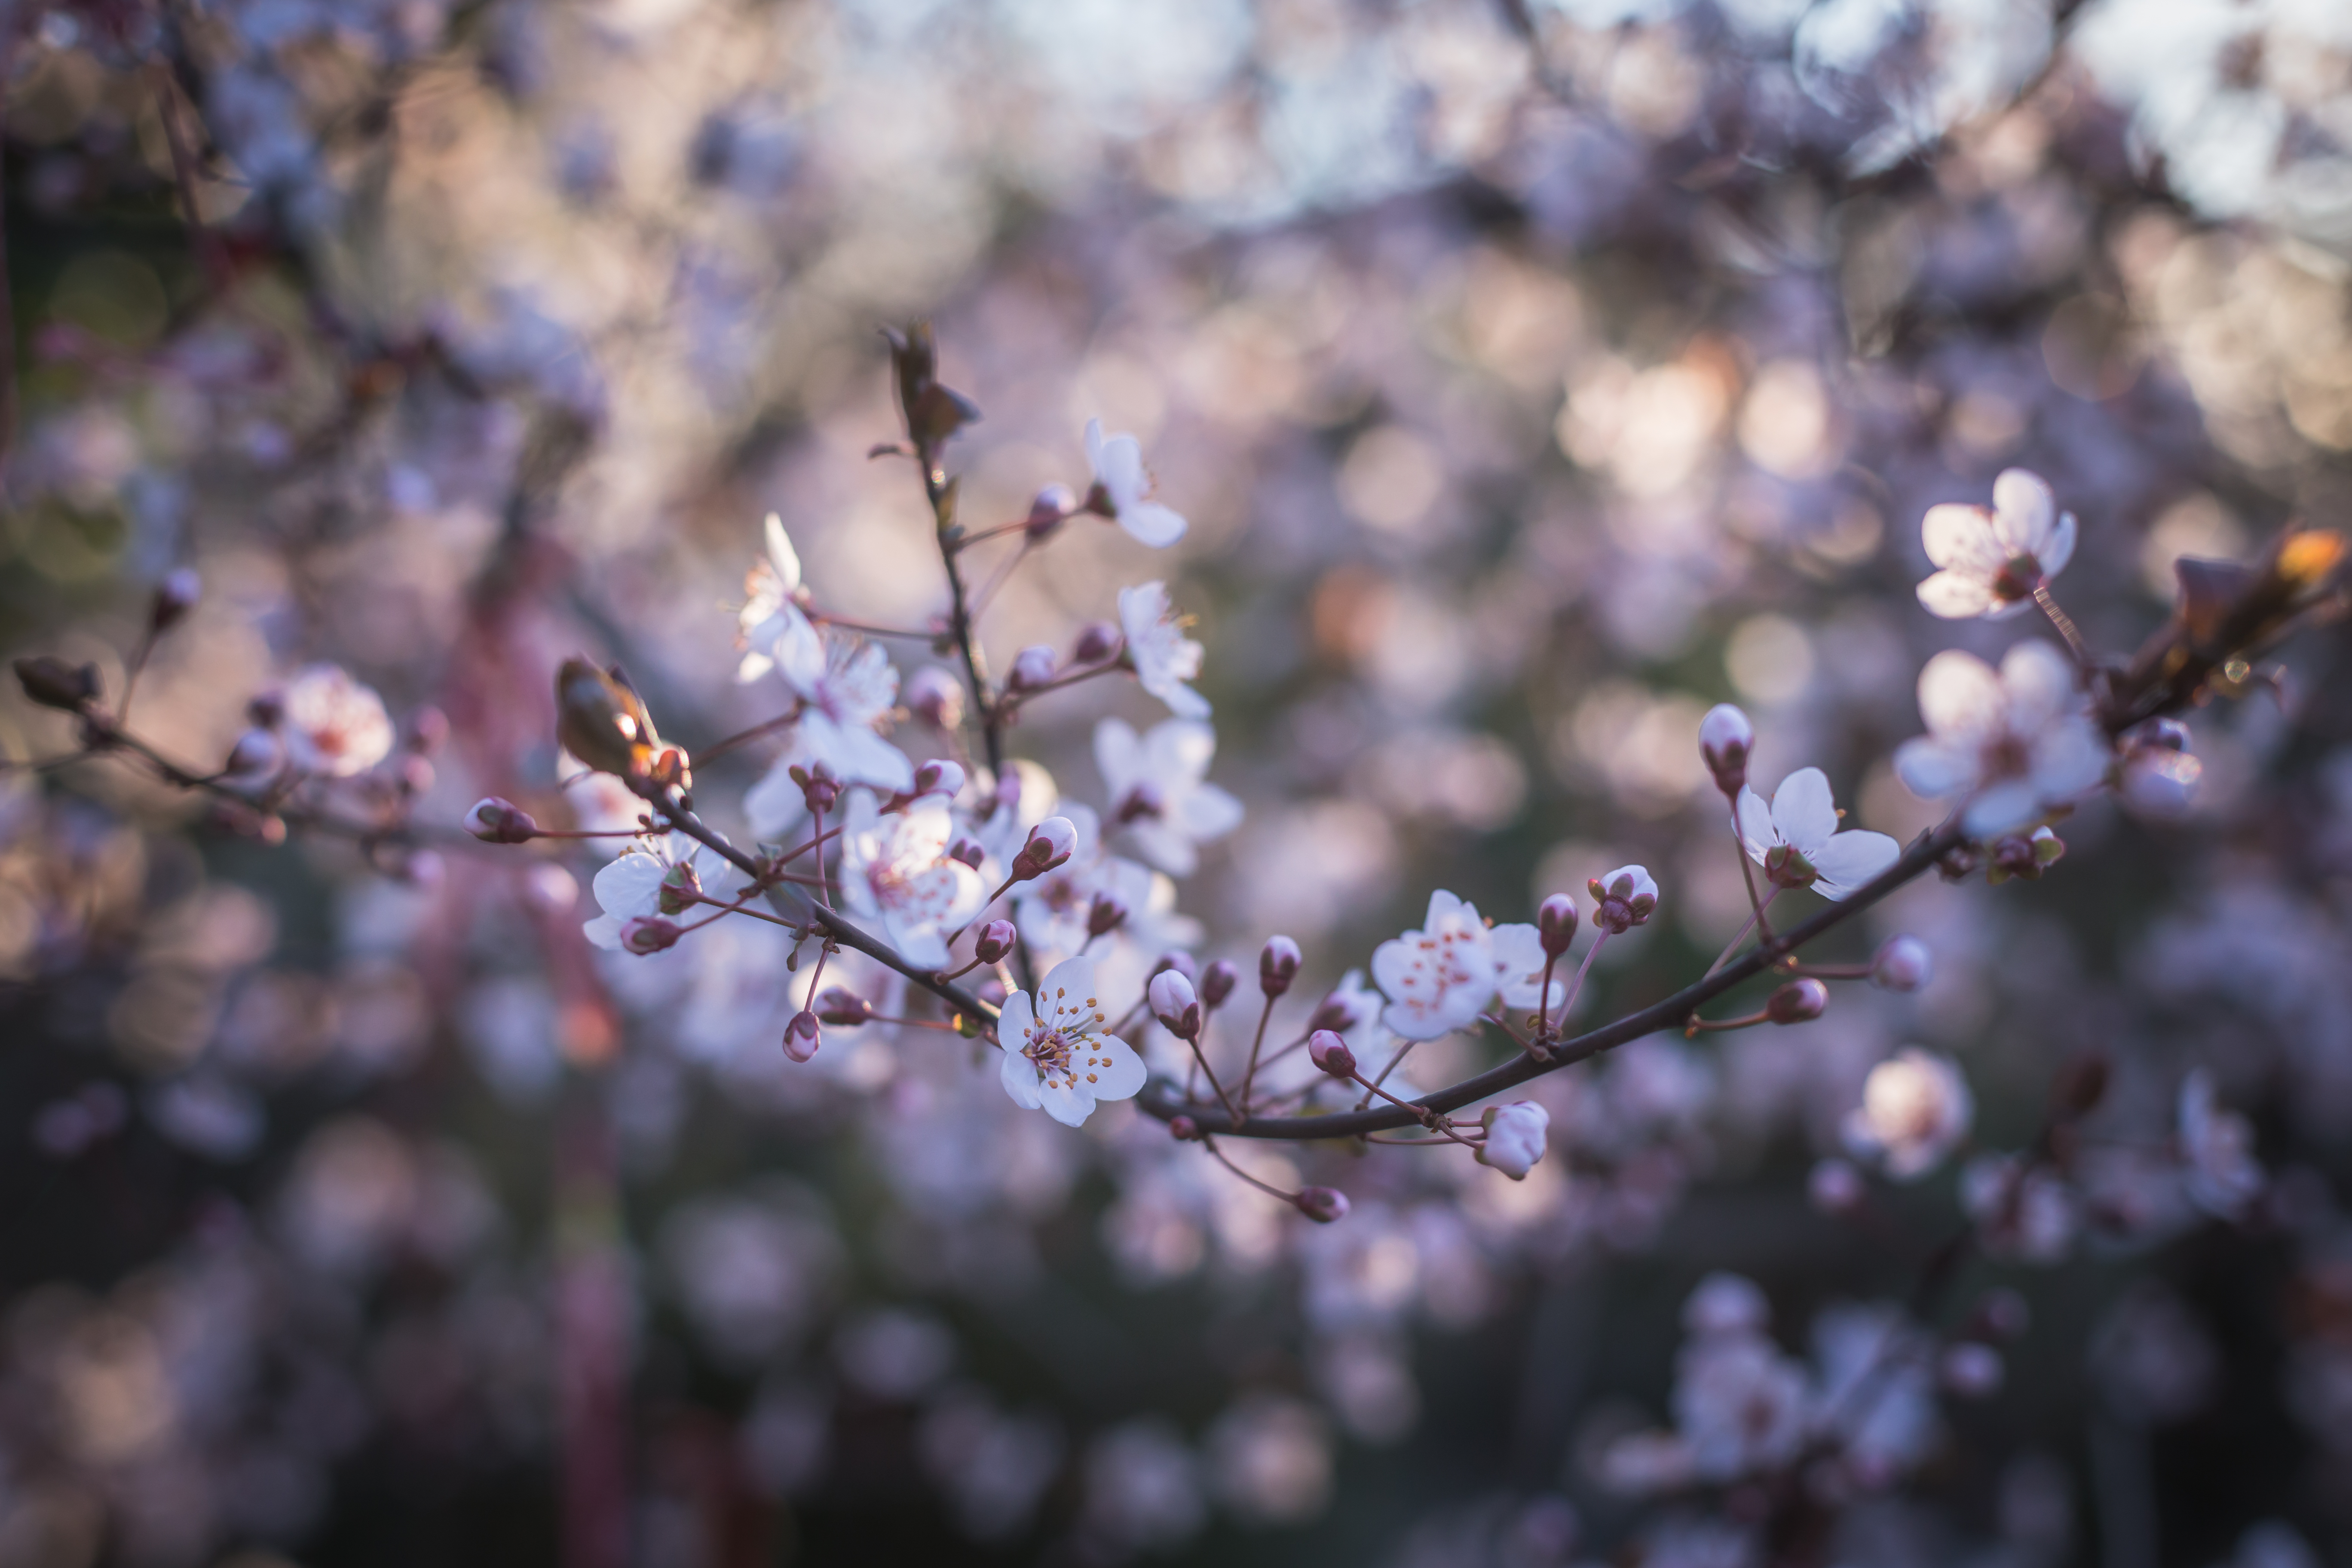 cherry blossoms close up photography 183 free stock photo